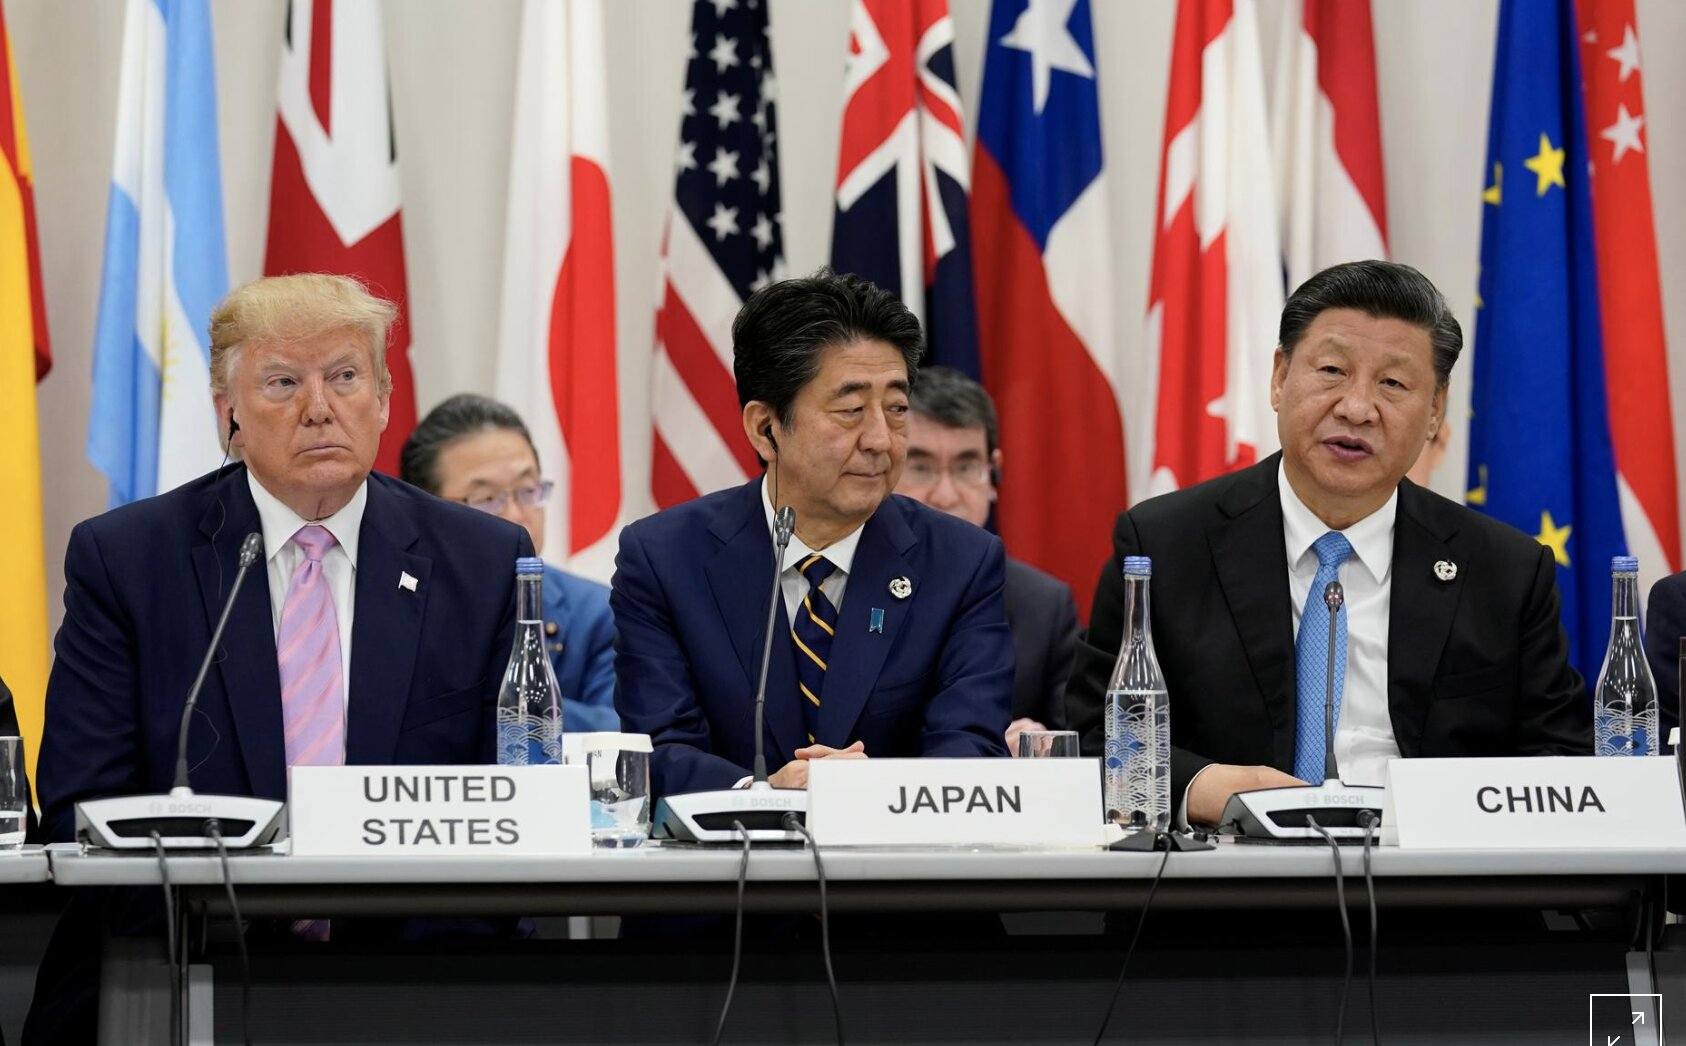 Trump talks trade at G20, China's Xi warns against protectionism